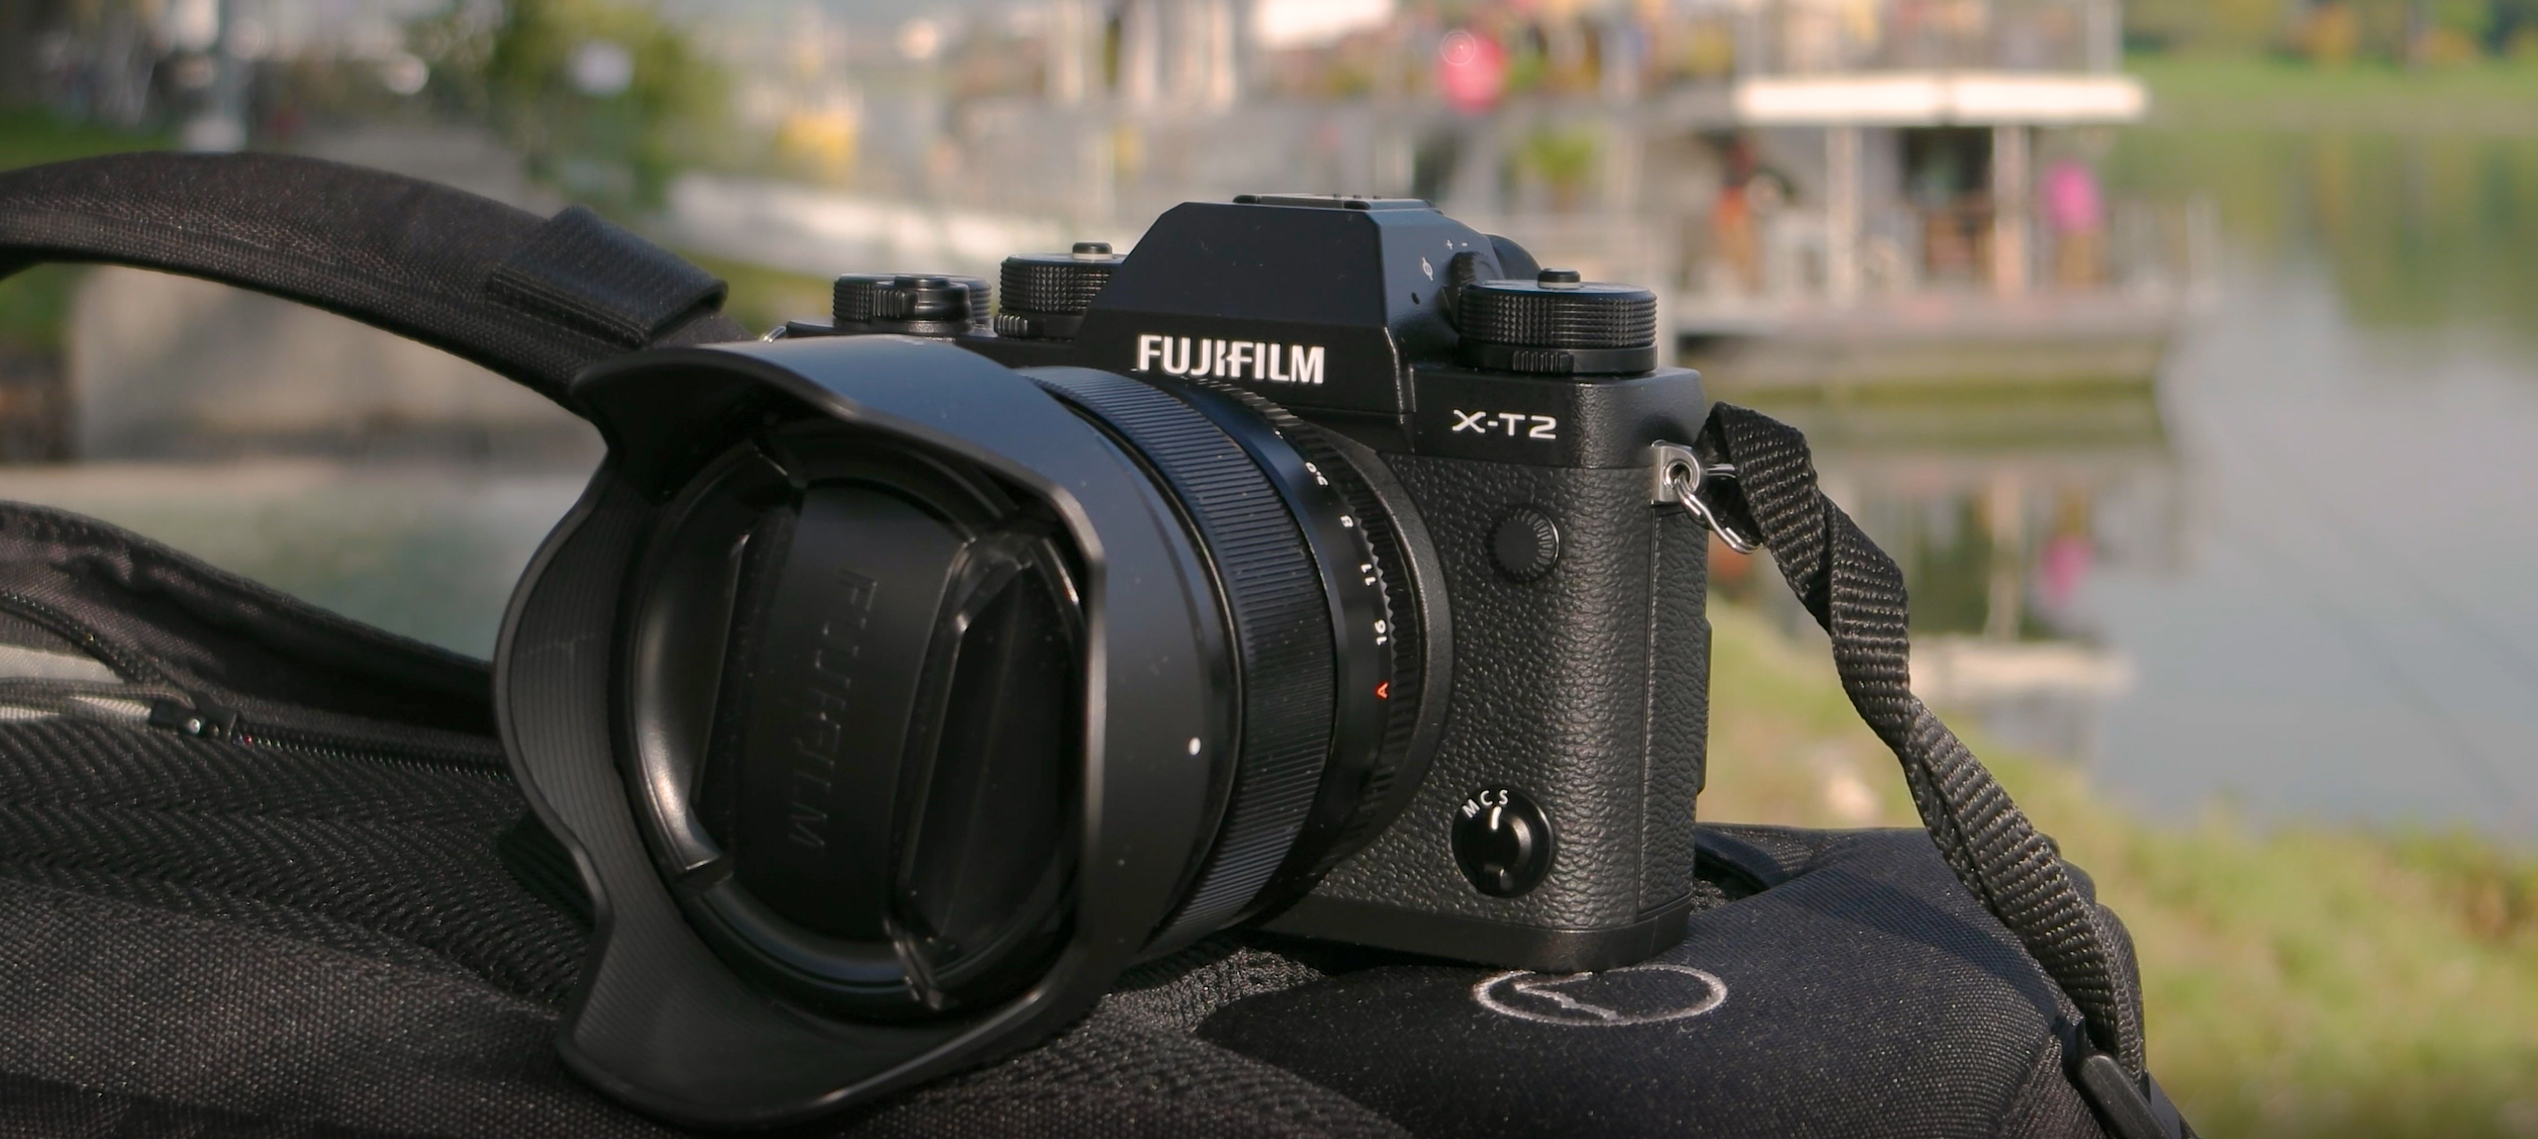 FUJI XT-2 REVIEW AND WHY I SWITCHED FROM SONY